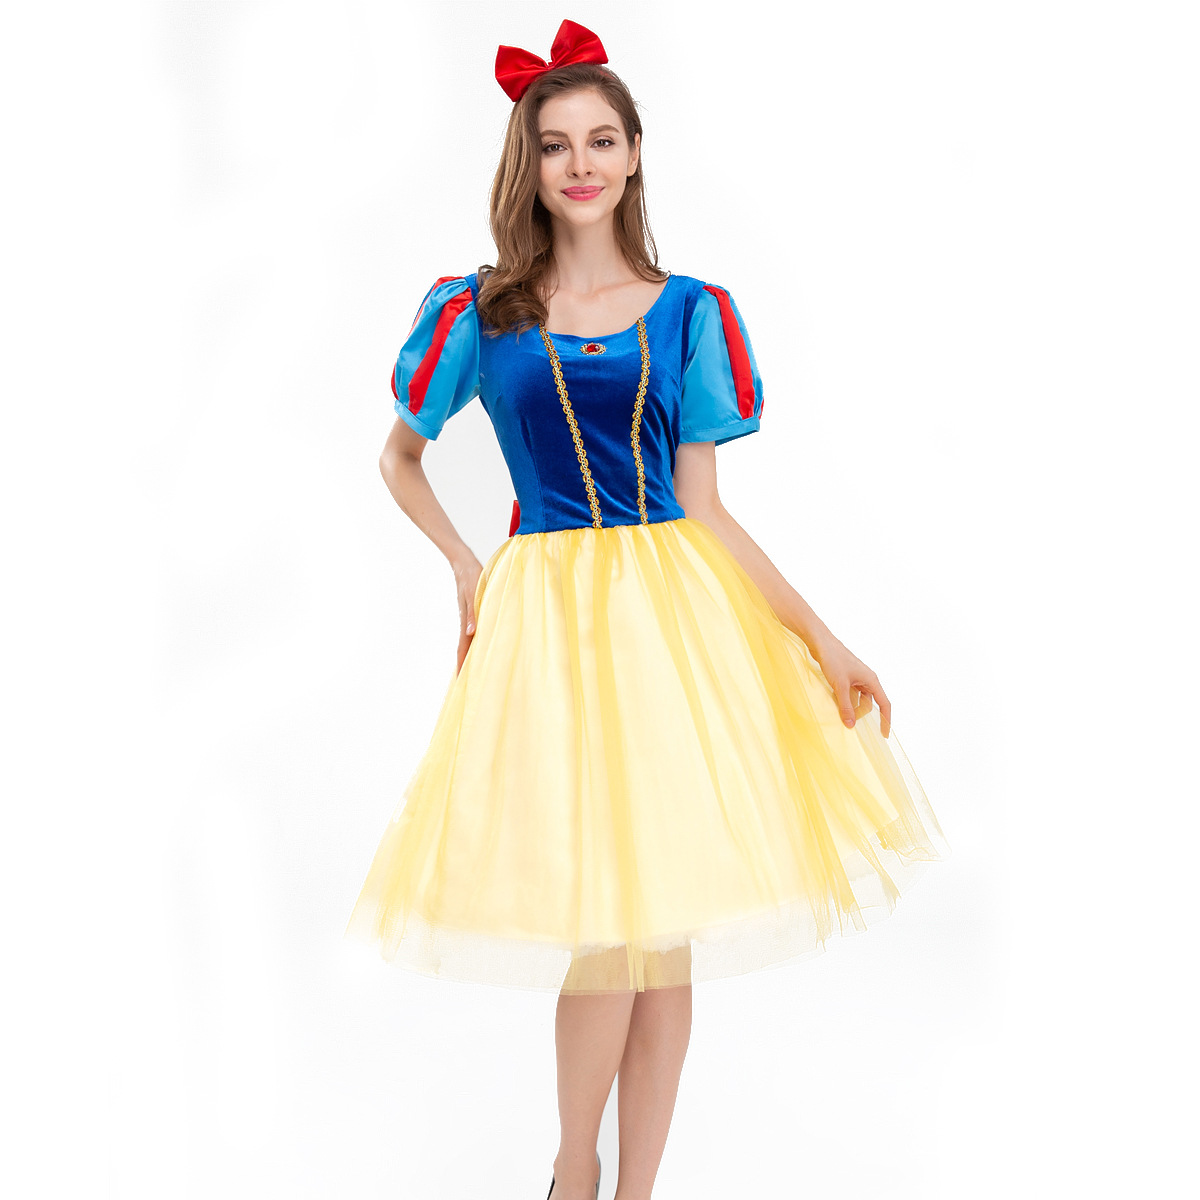 New snow white role play theme park princess dress show dress party ball cosplay